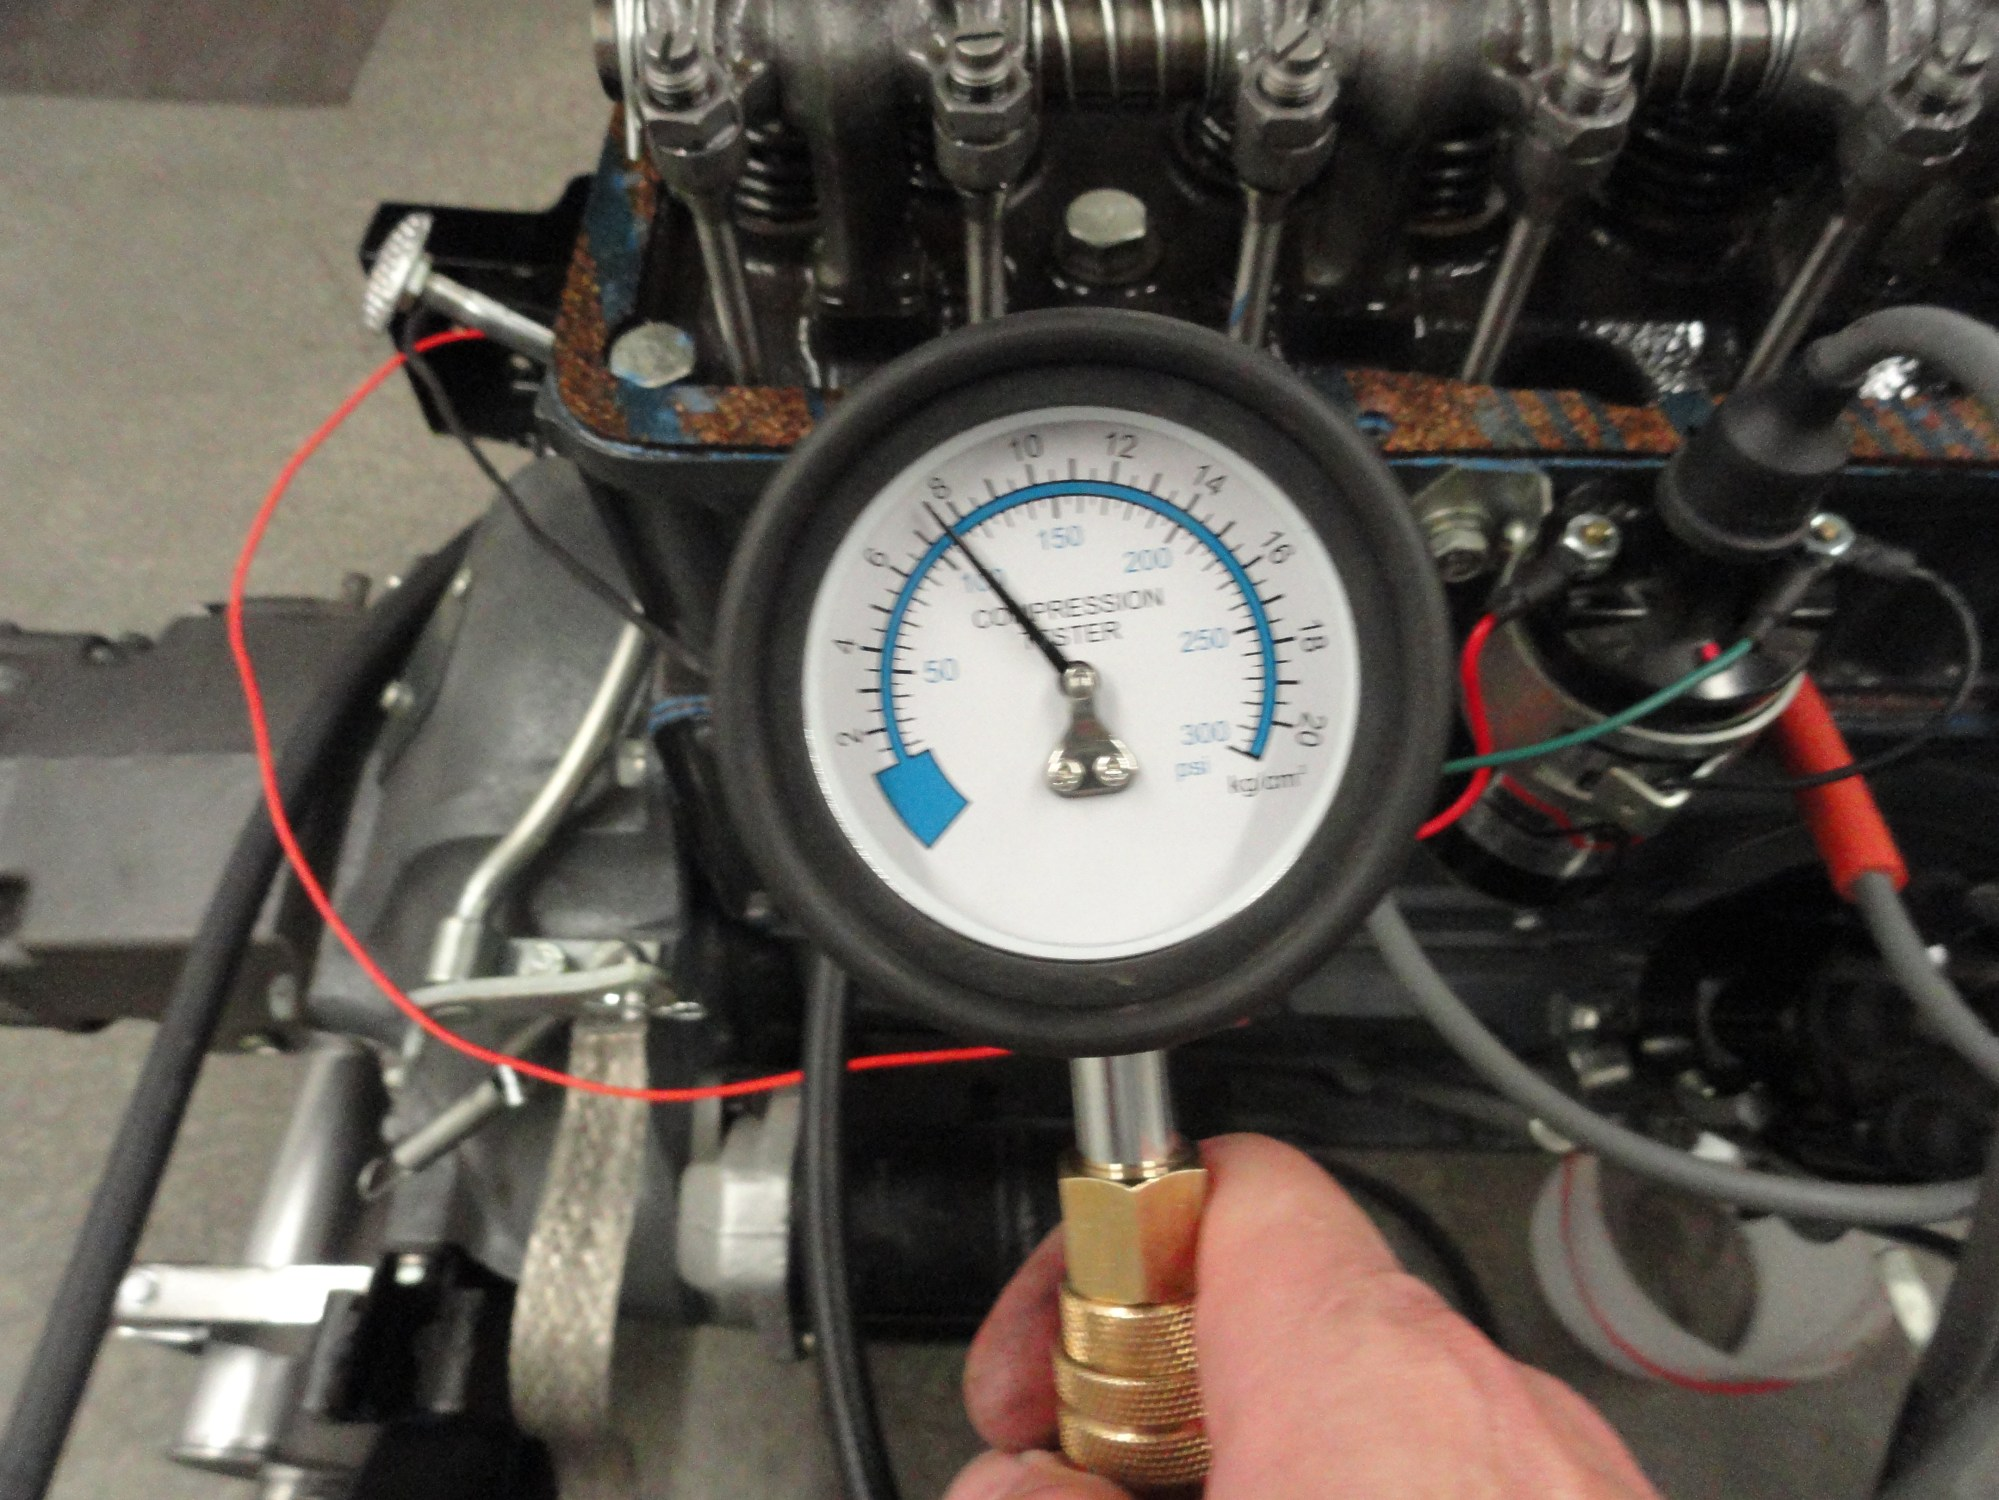 hight resolution of with the ignition switch off make sure its off remove all the spark plugs and the distributor cap prop the throttle wide open to get the most accurate